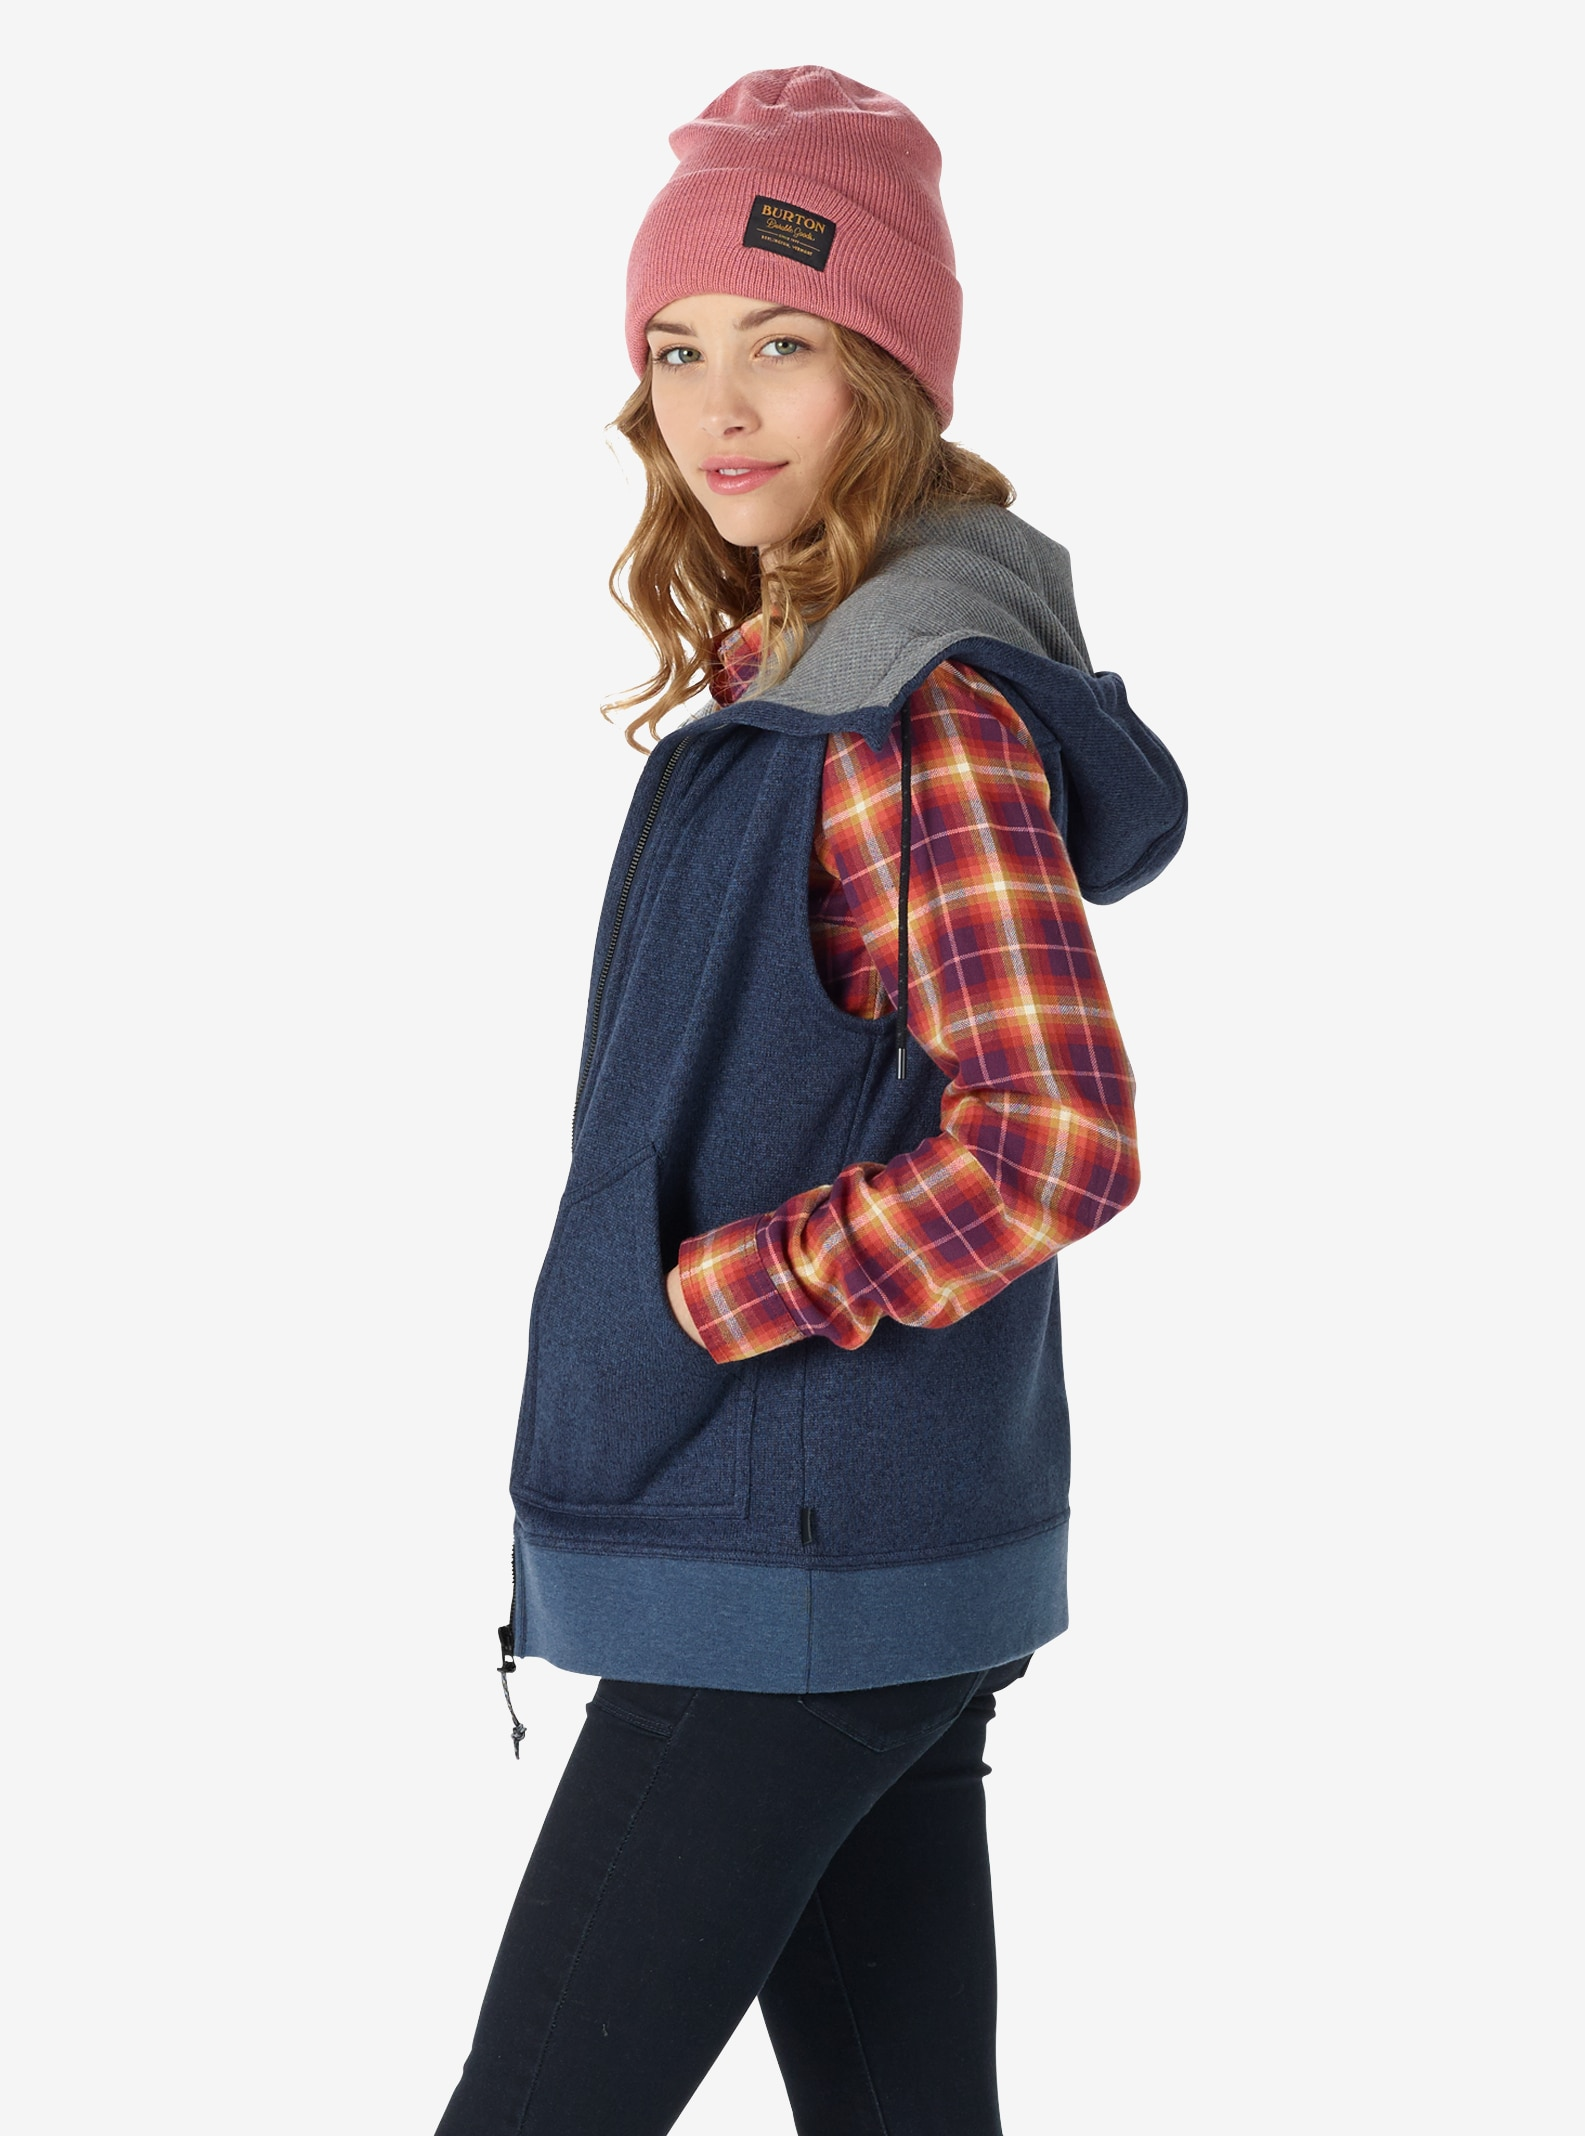 Women's Burton Starr Vest shown in Mood Indigo Heather